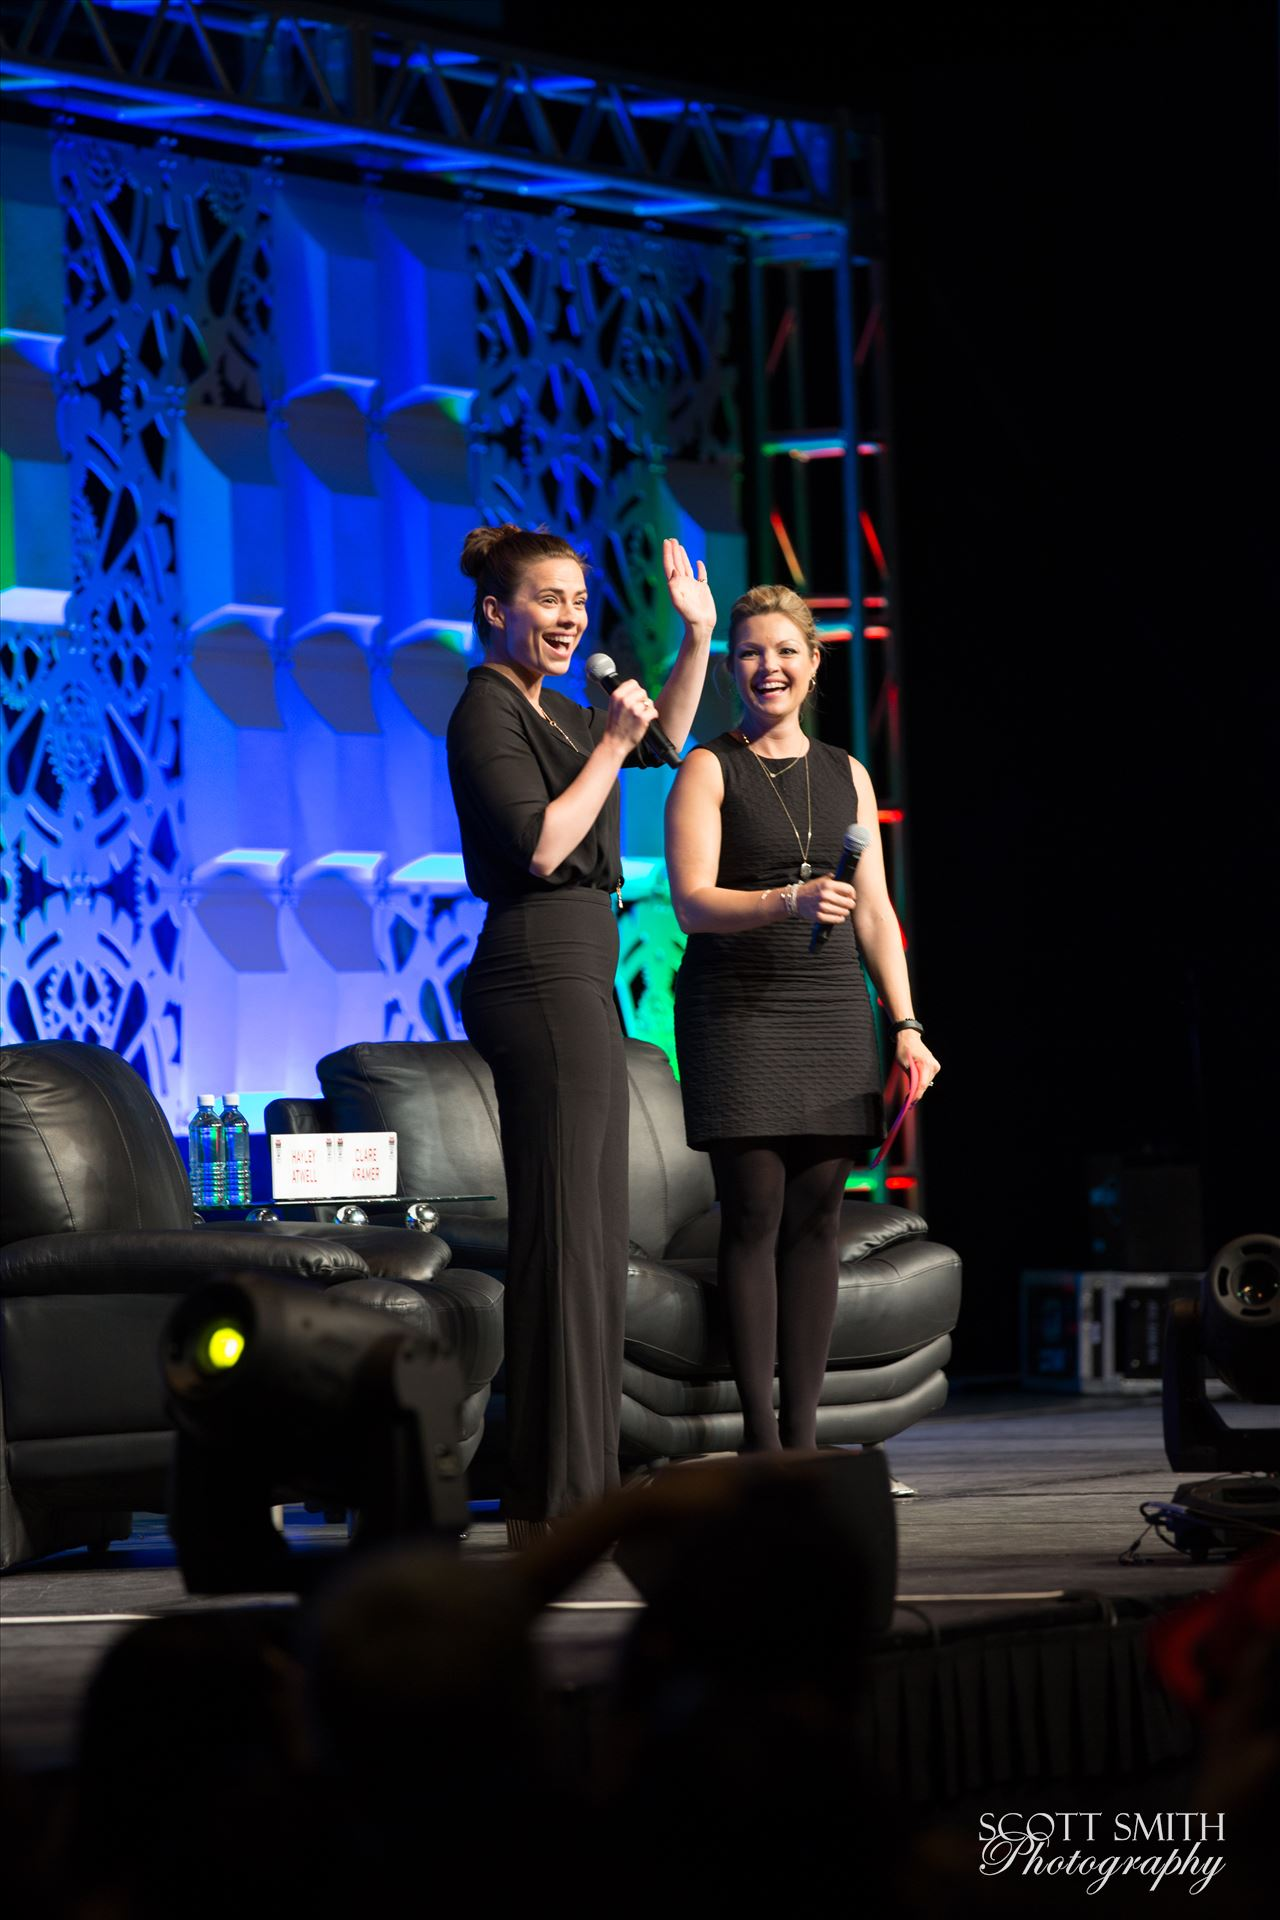 Denver Comic Con 2016 18 - Denver Comic Con 2016 at the Colorado Convention Center. Clare Kramer and Haley Atwell. by D Scott Smith